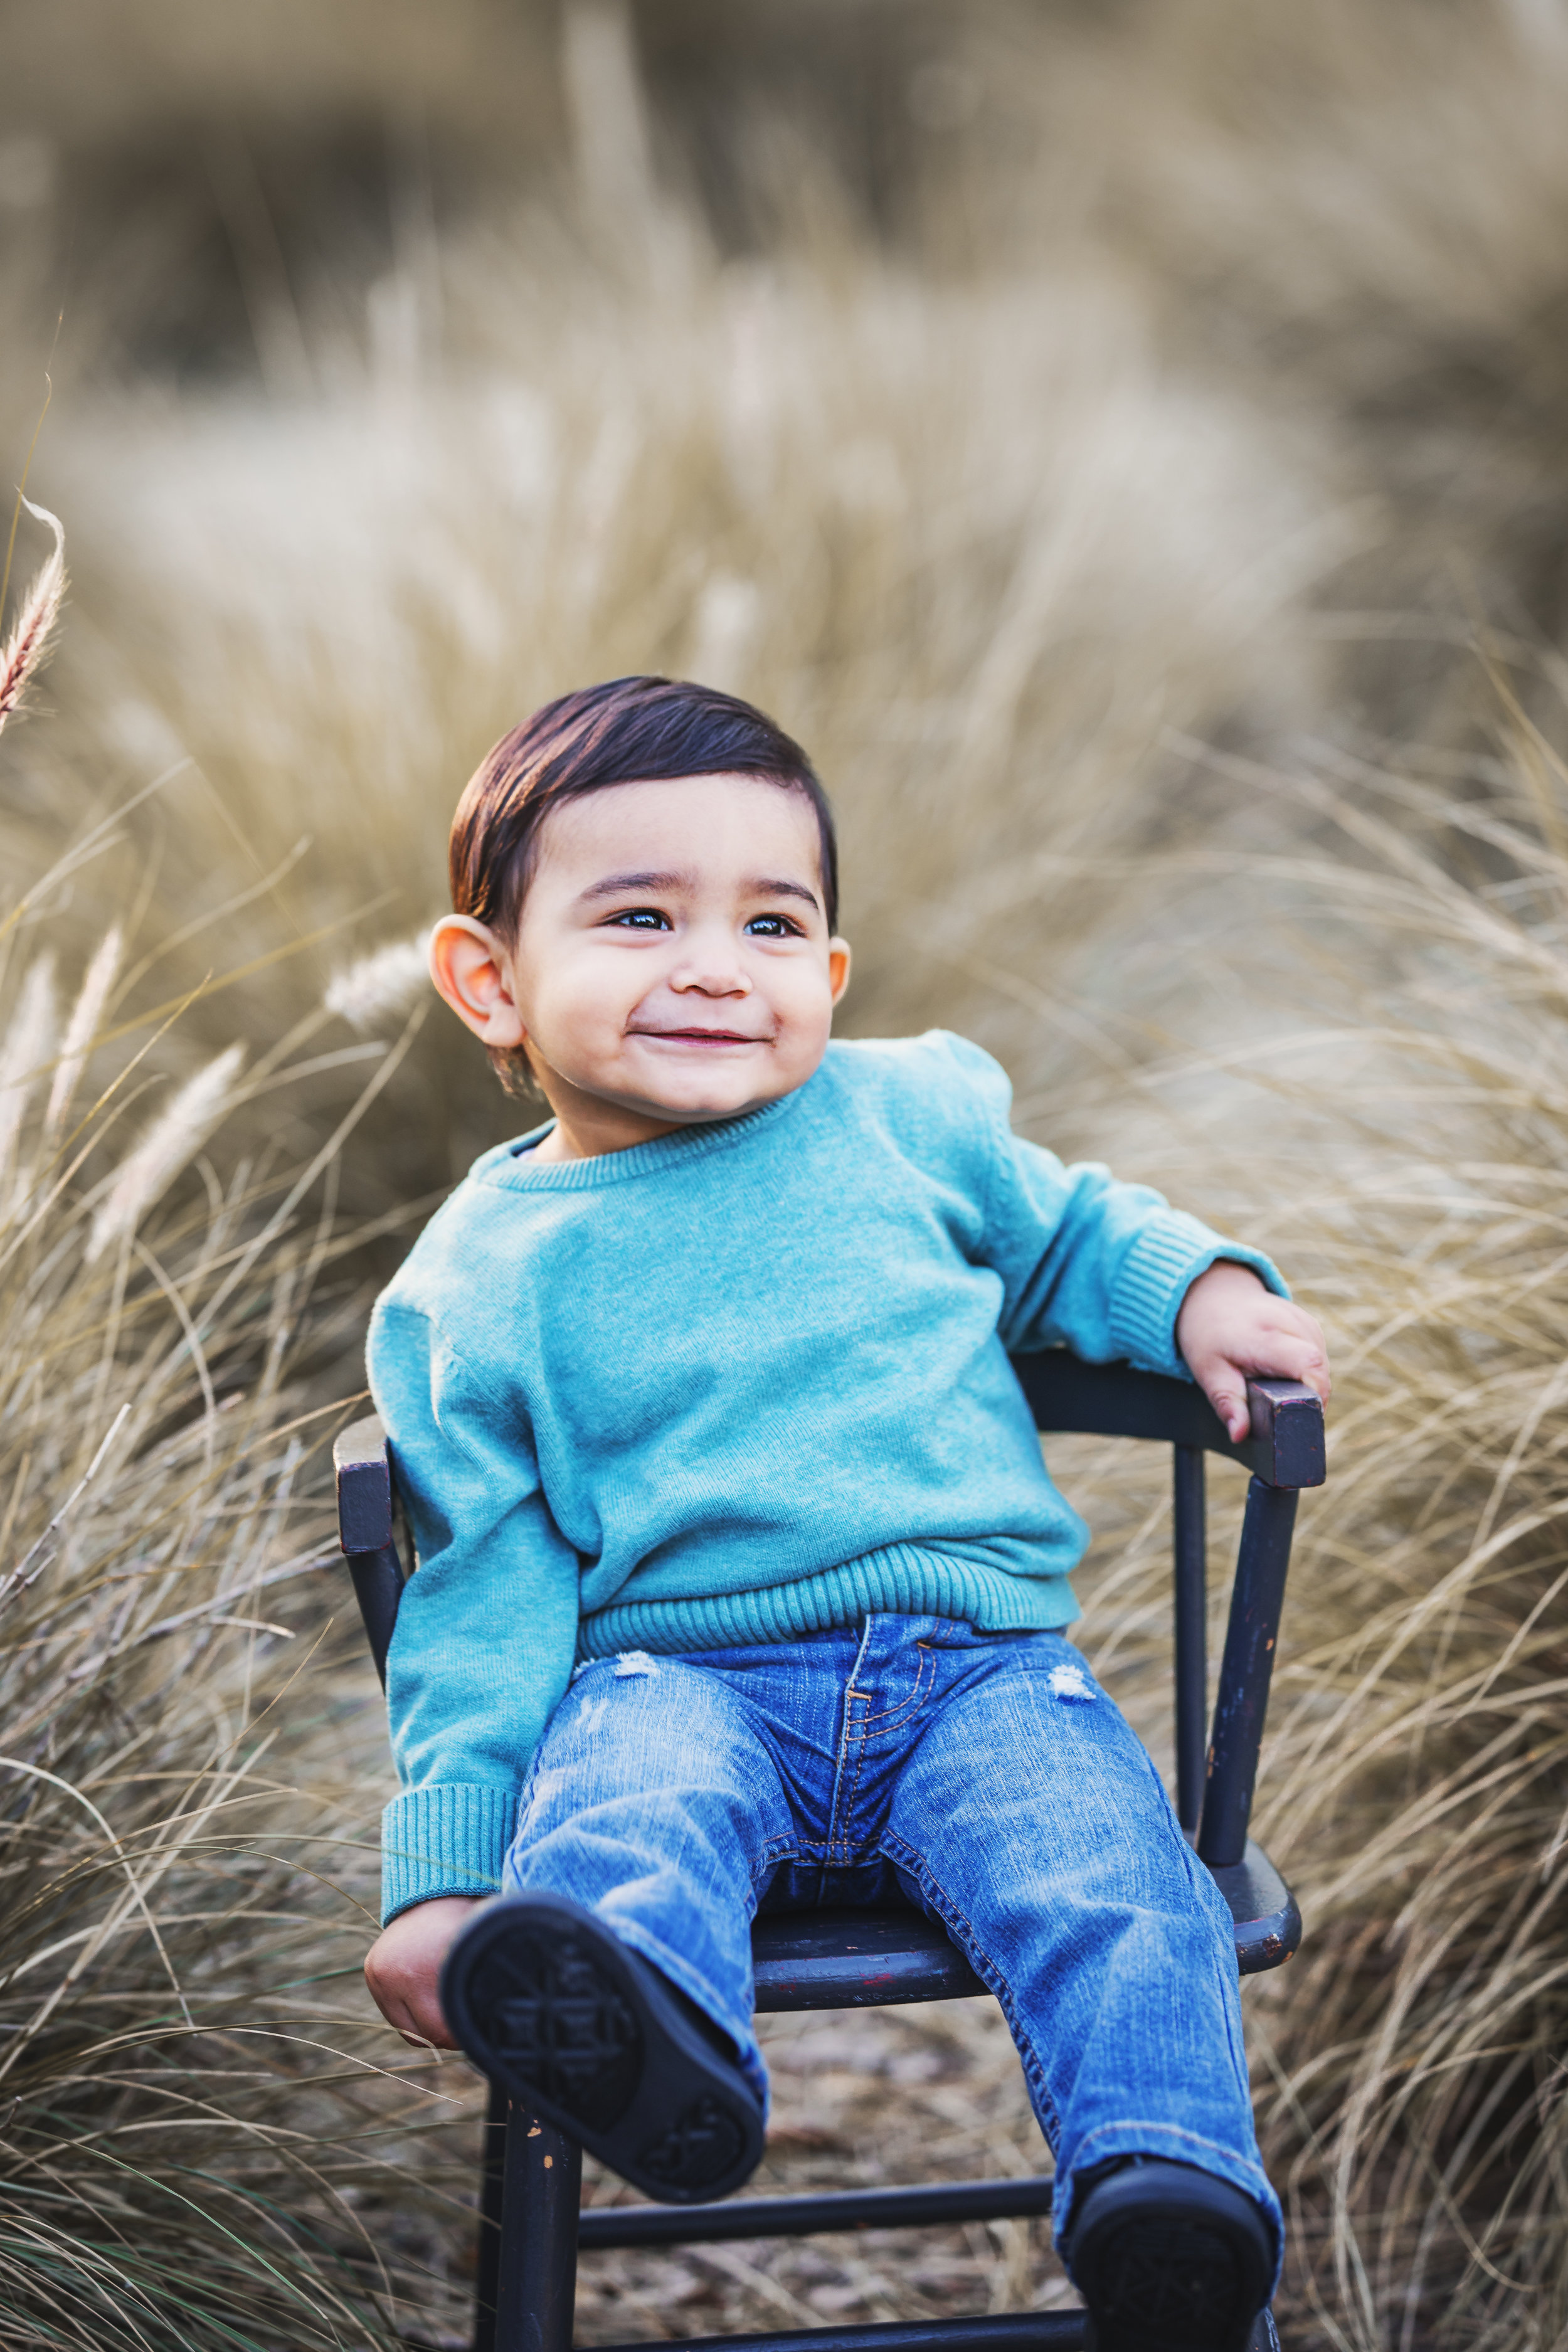 Beautiful baby boy in an aqua marine sweater in this portrait by Nature's Reward Photography